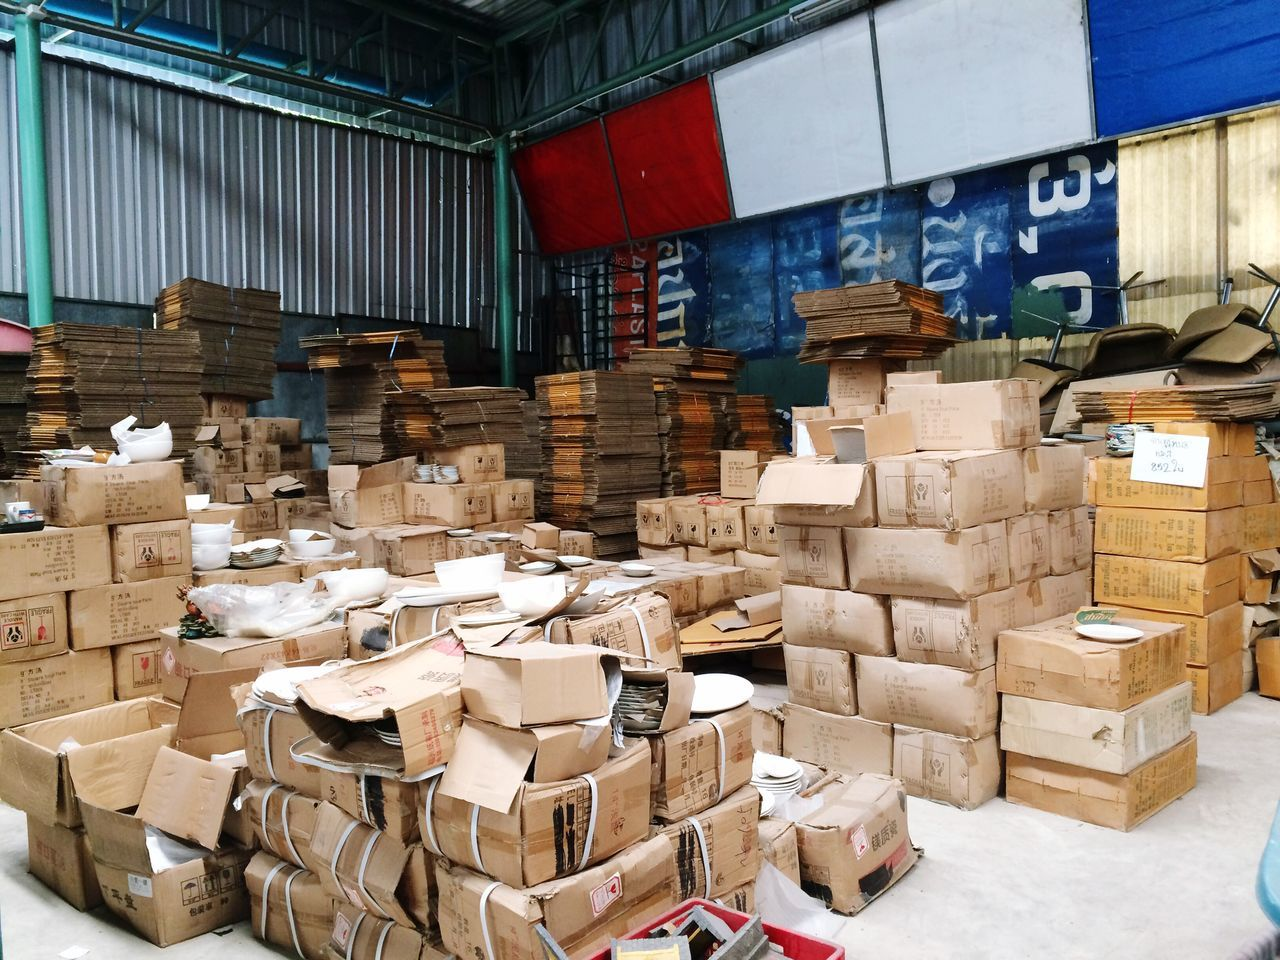 Boxes High Angle View Stack Large Group Of Objects Warehouse Cardboard Box Material Abundance Distribution Warehouse No People Indoors